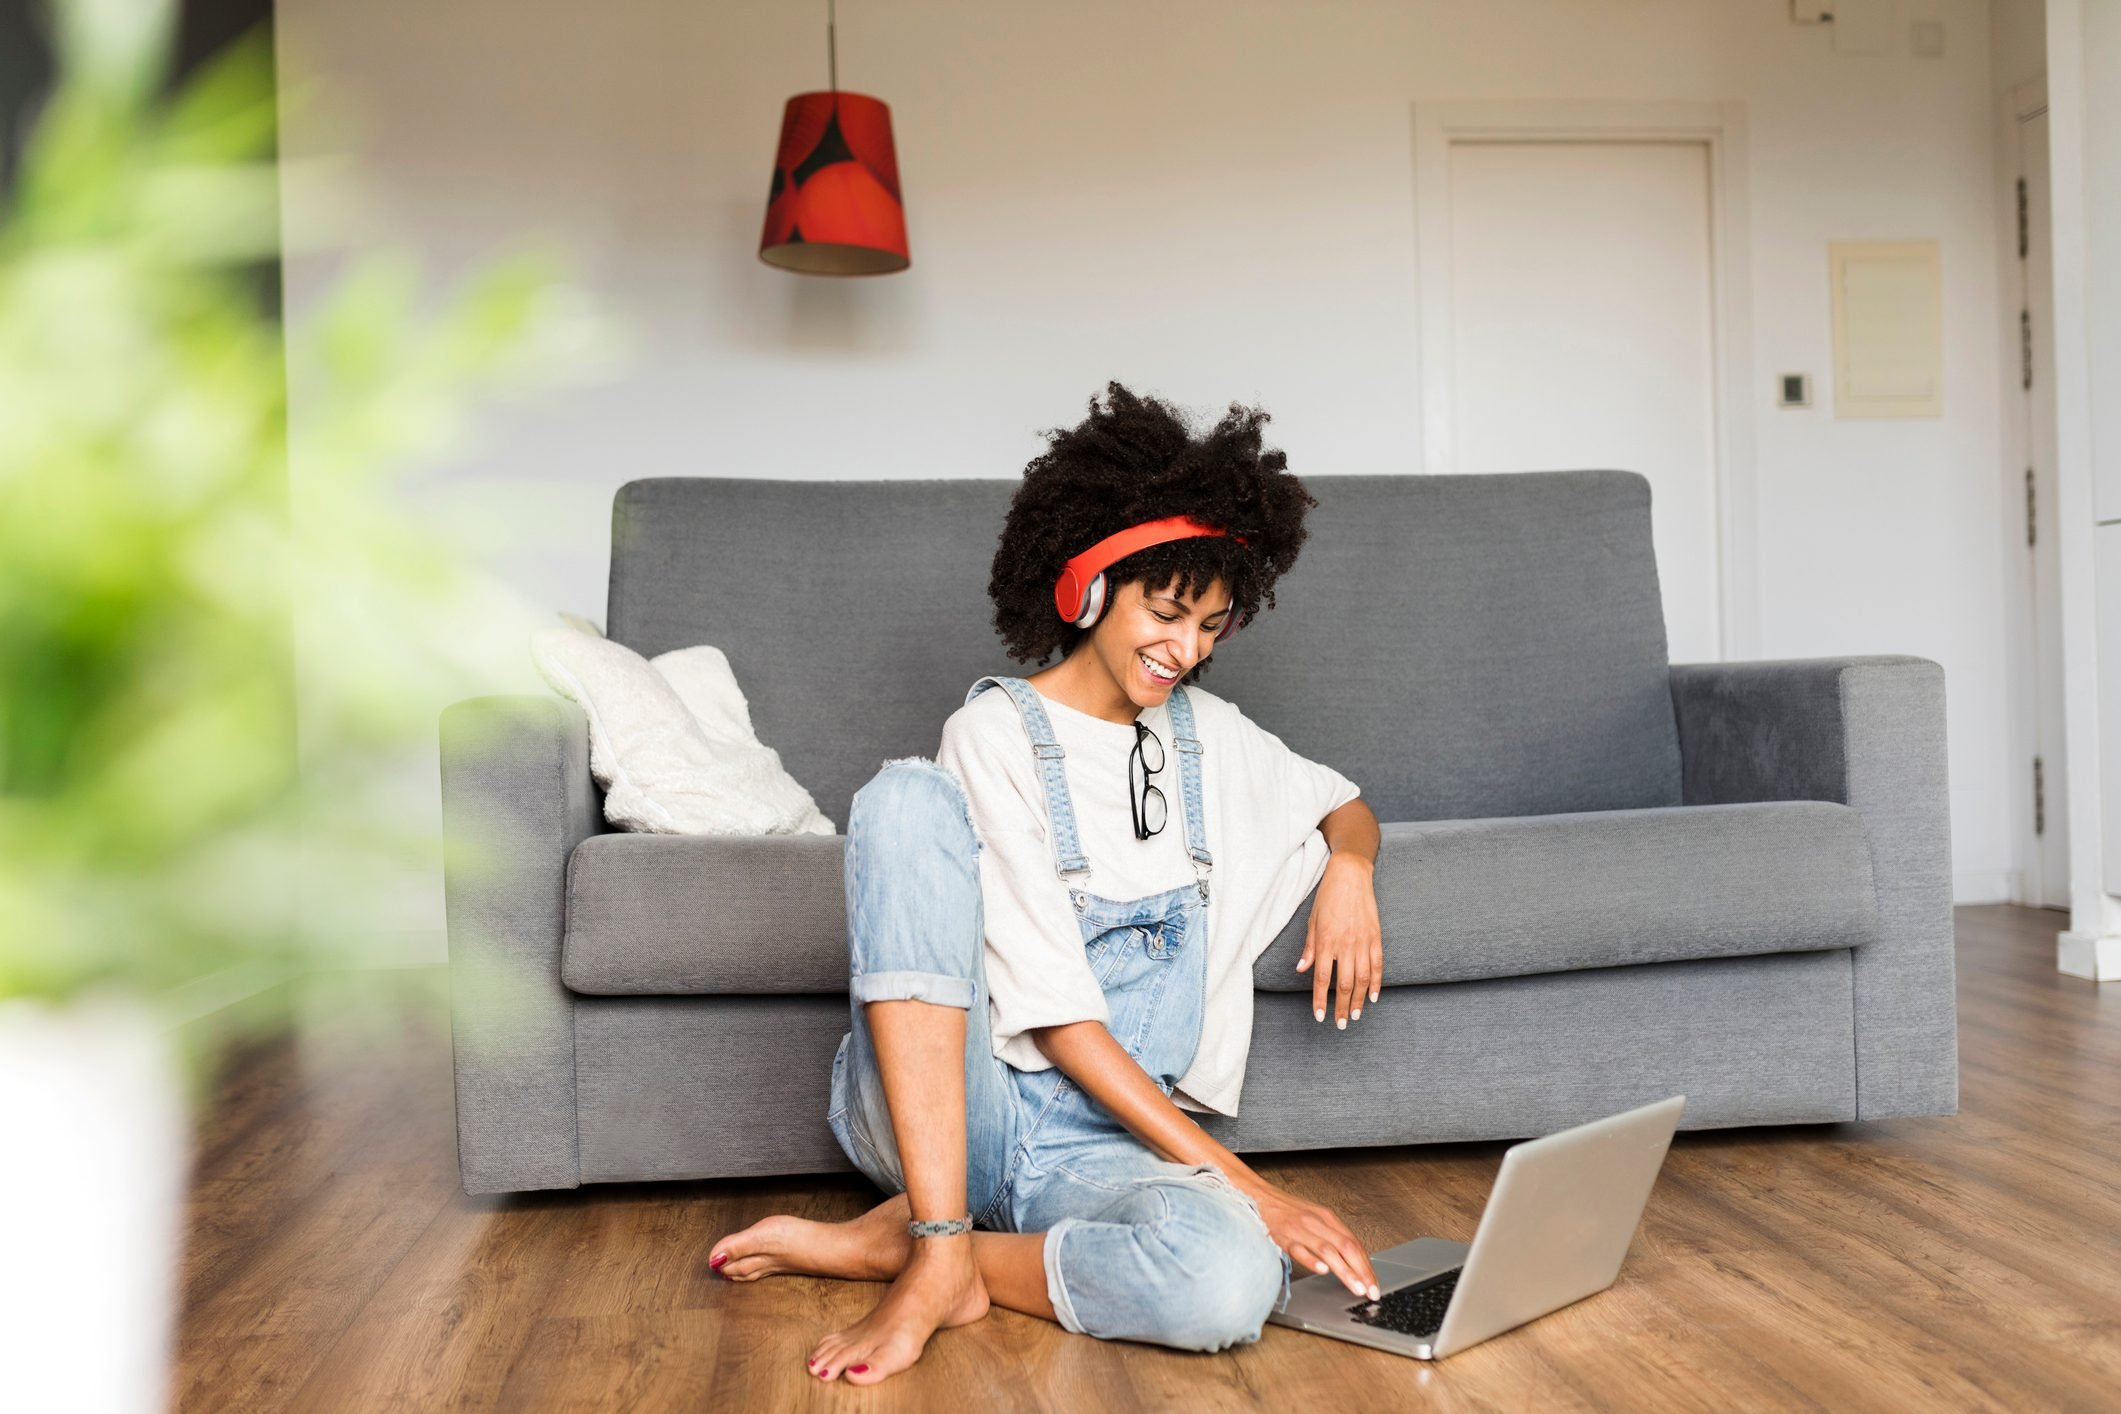 Smiling woman sitting at home with headphones and laptop